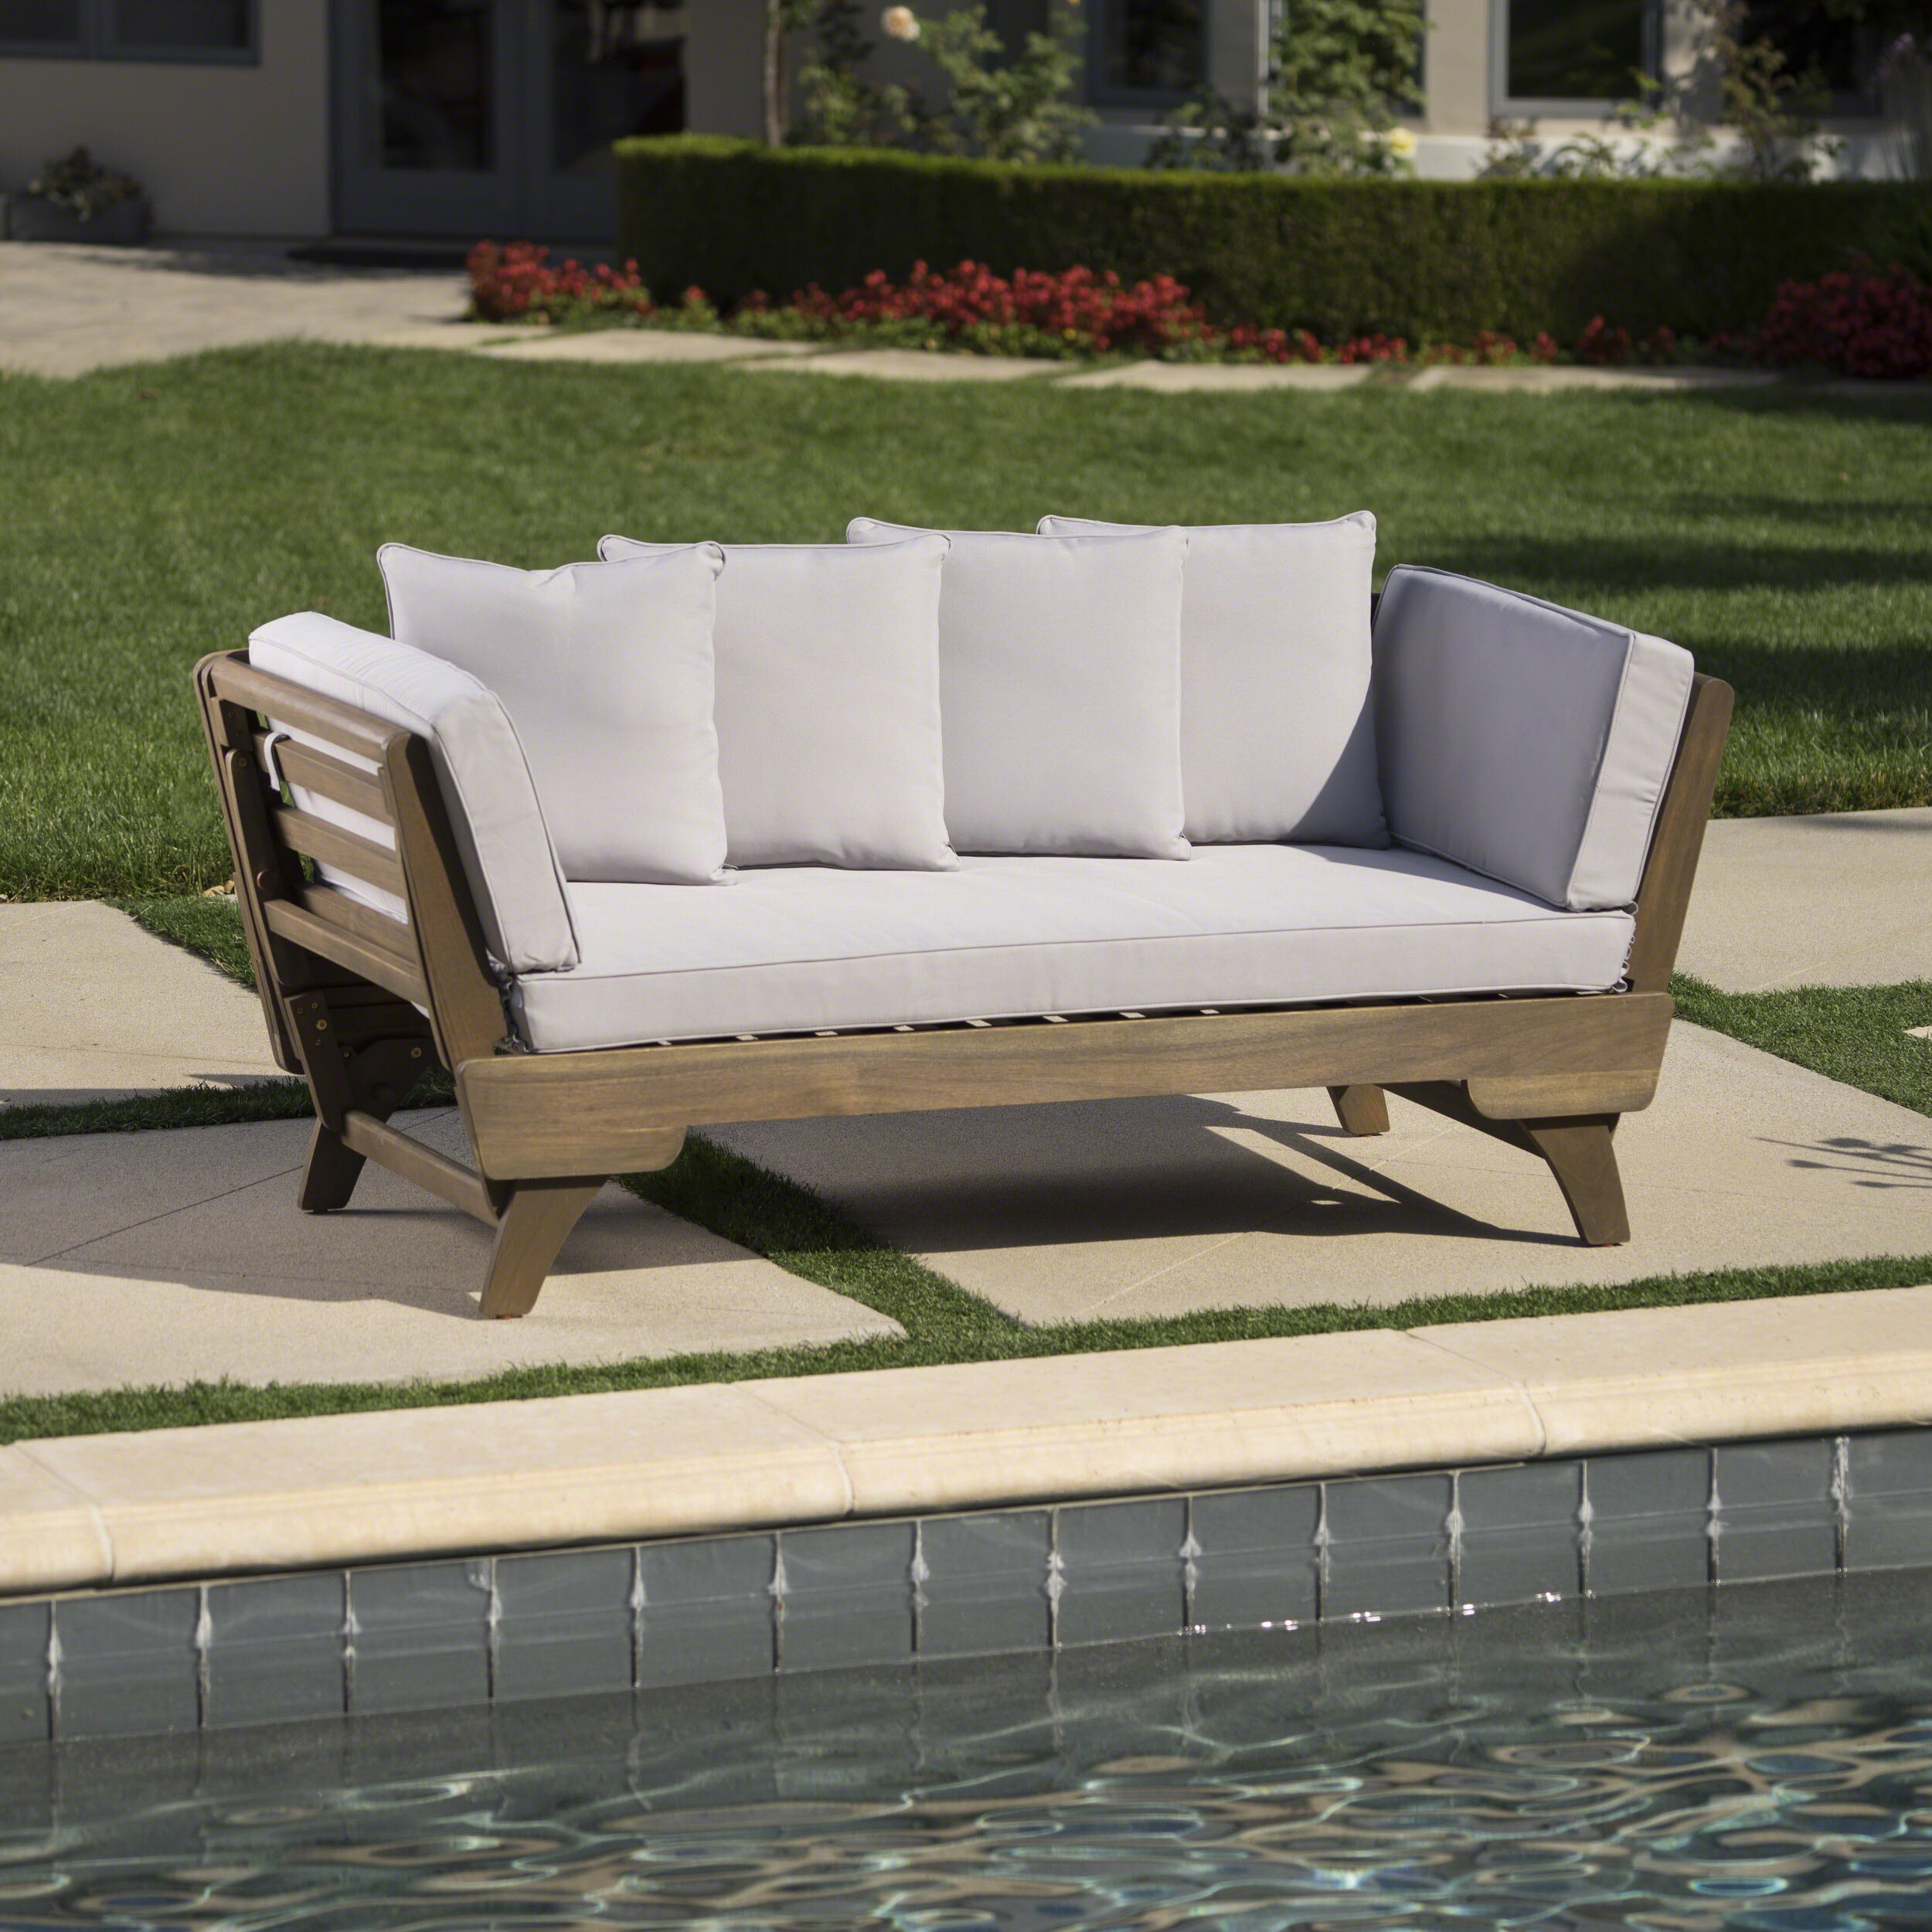 mayfield qlt new furniture cushion hei wid prod loveseat replacement cushions patio